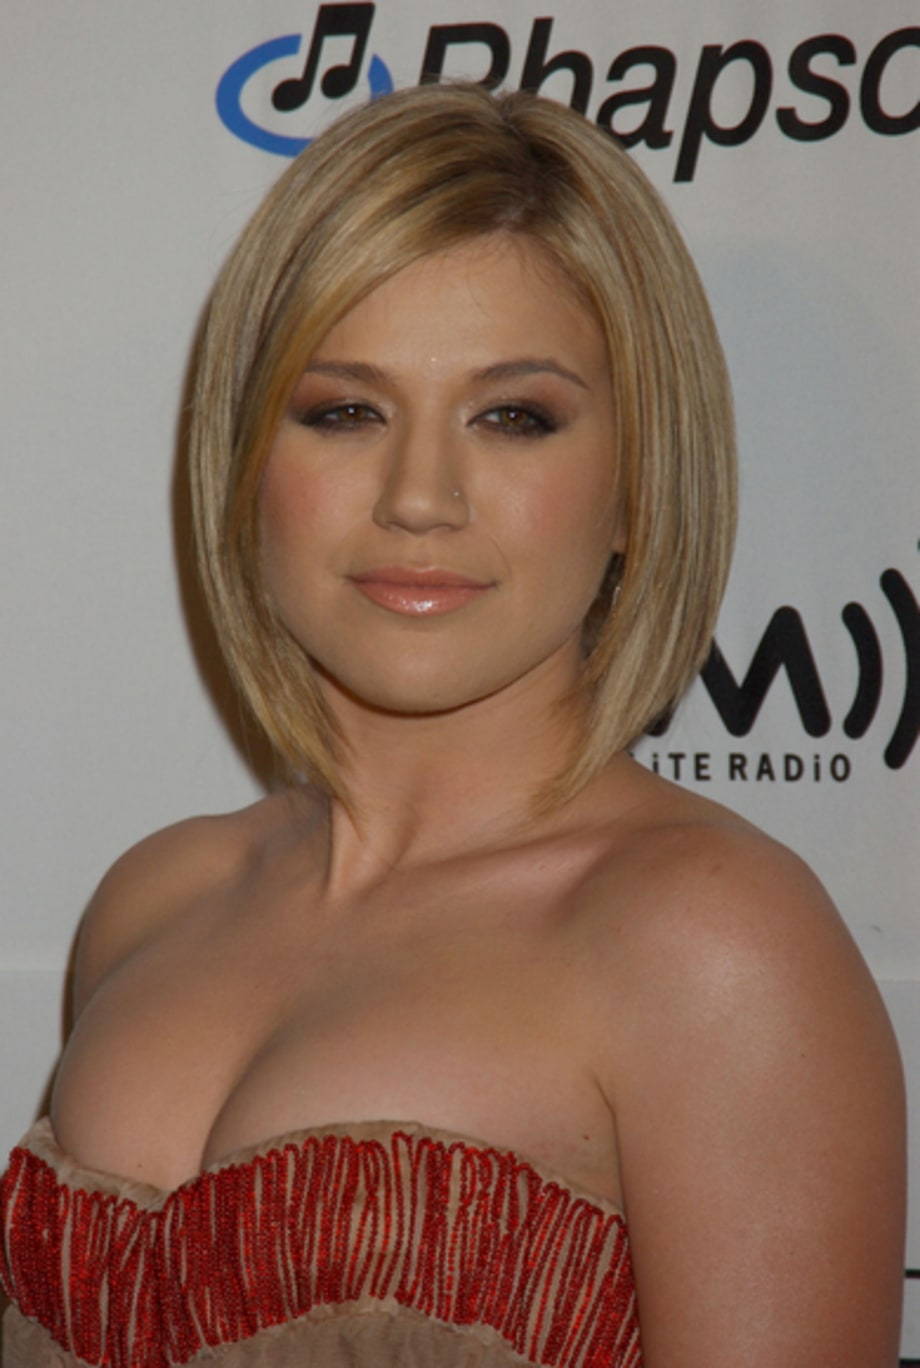 Kelly Clarkson 1 - 2006 Clive Davis Pre-Grammy Party 2/6/06